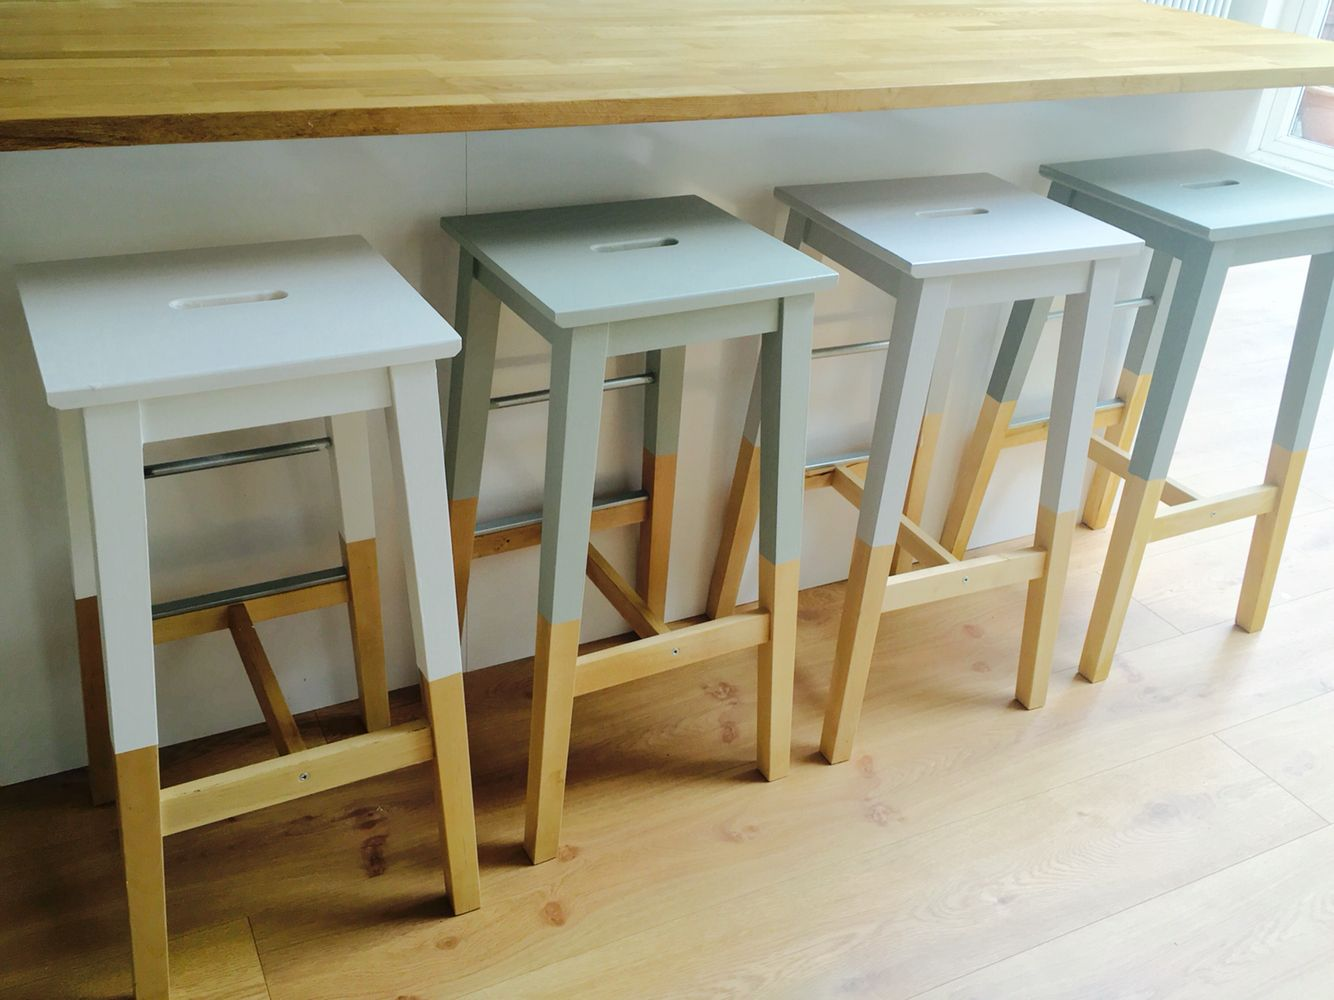 Painted Ikea Breakfast Stools In Farrow Ball All White Mizzle Cornforth White And Pigeon Ikea Barstools Kitchen Bar Stools Kitchen Stools